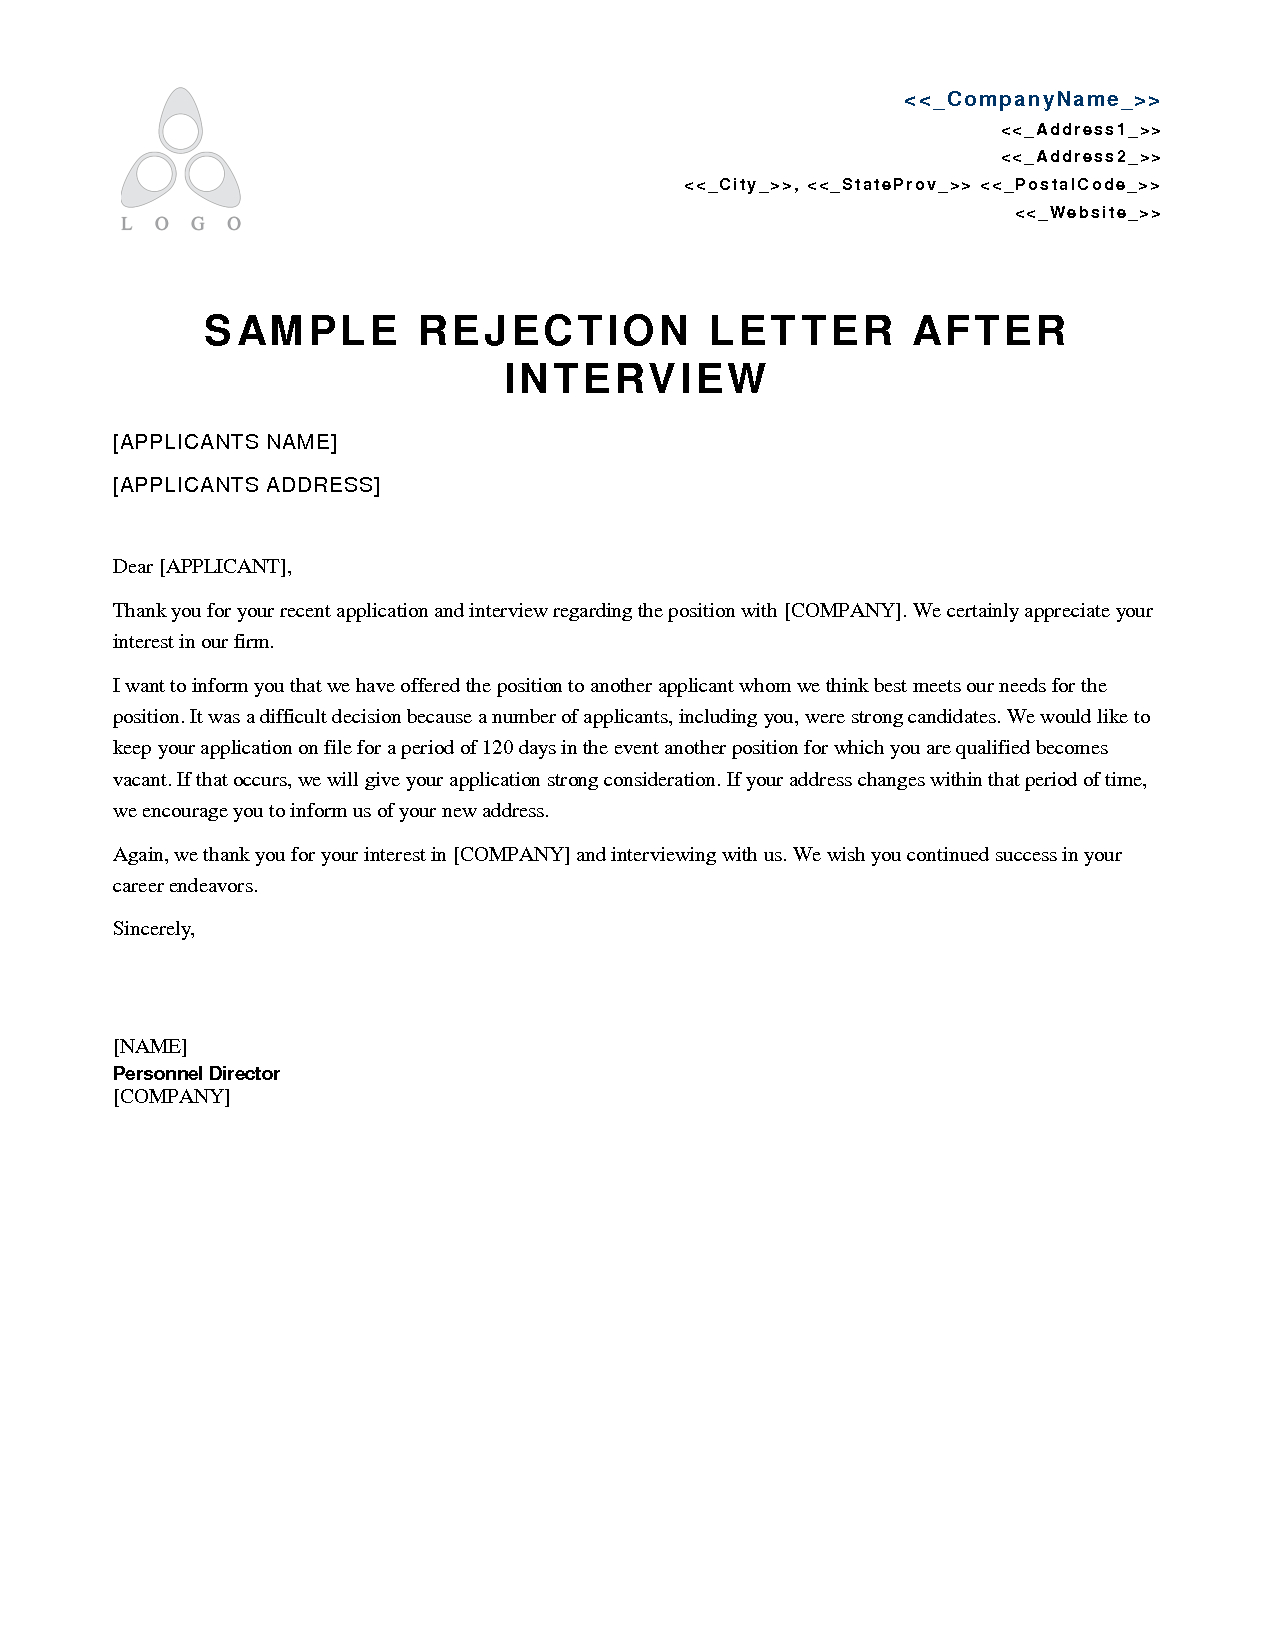 Employment Rejection Letter Template - Reject Resignation Letter S High Resolution Decline to